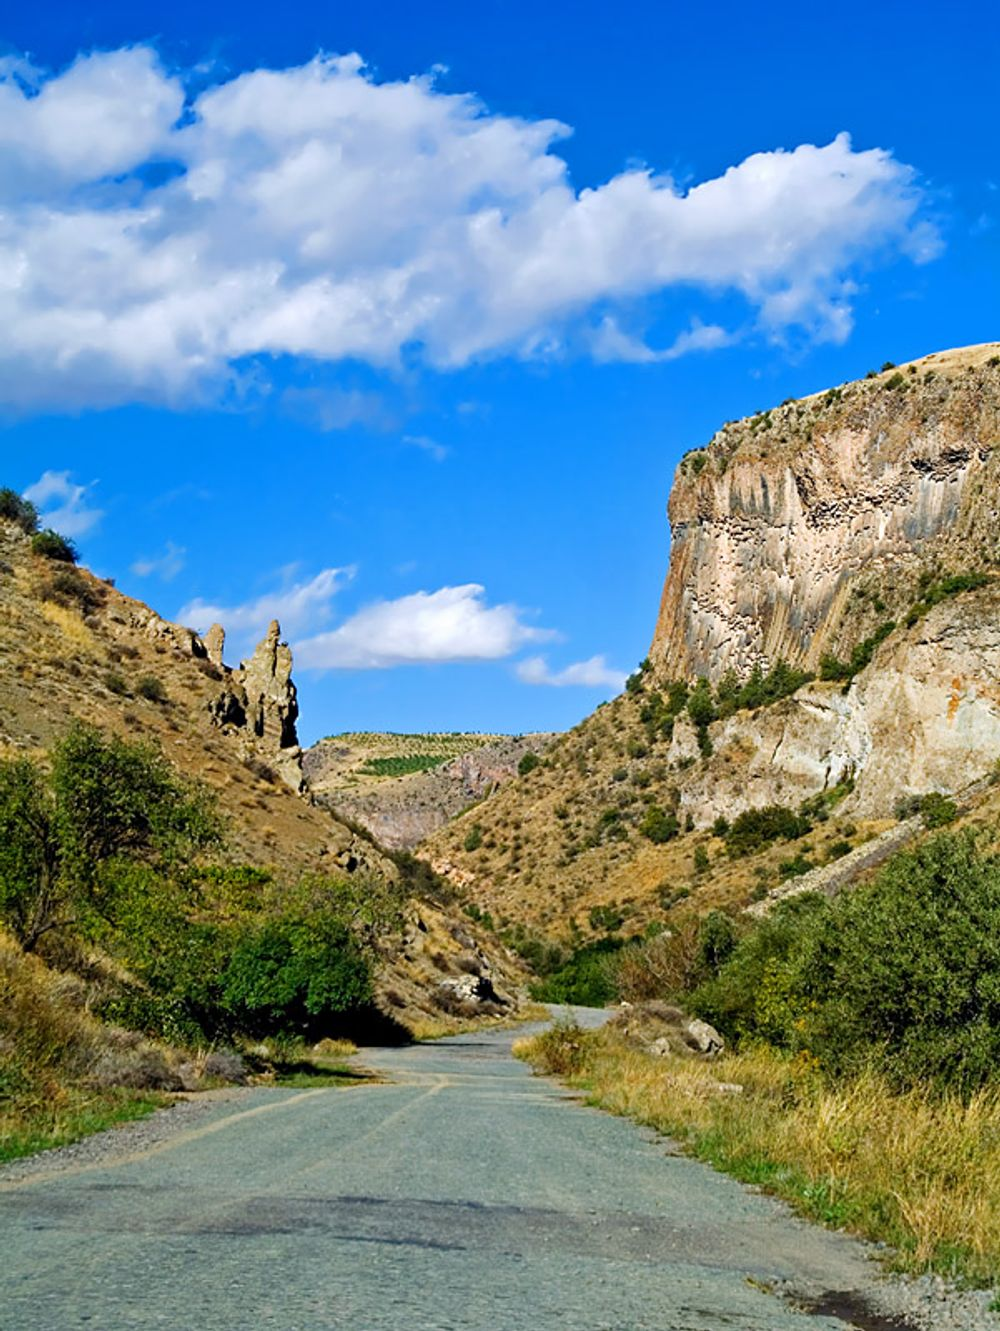 title: Road to Gndevank Armenia